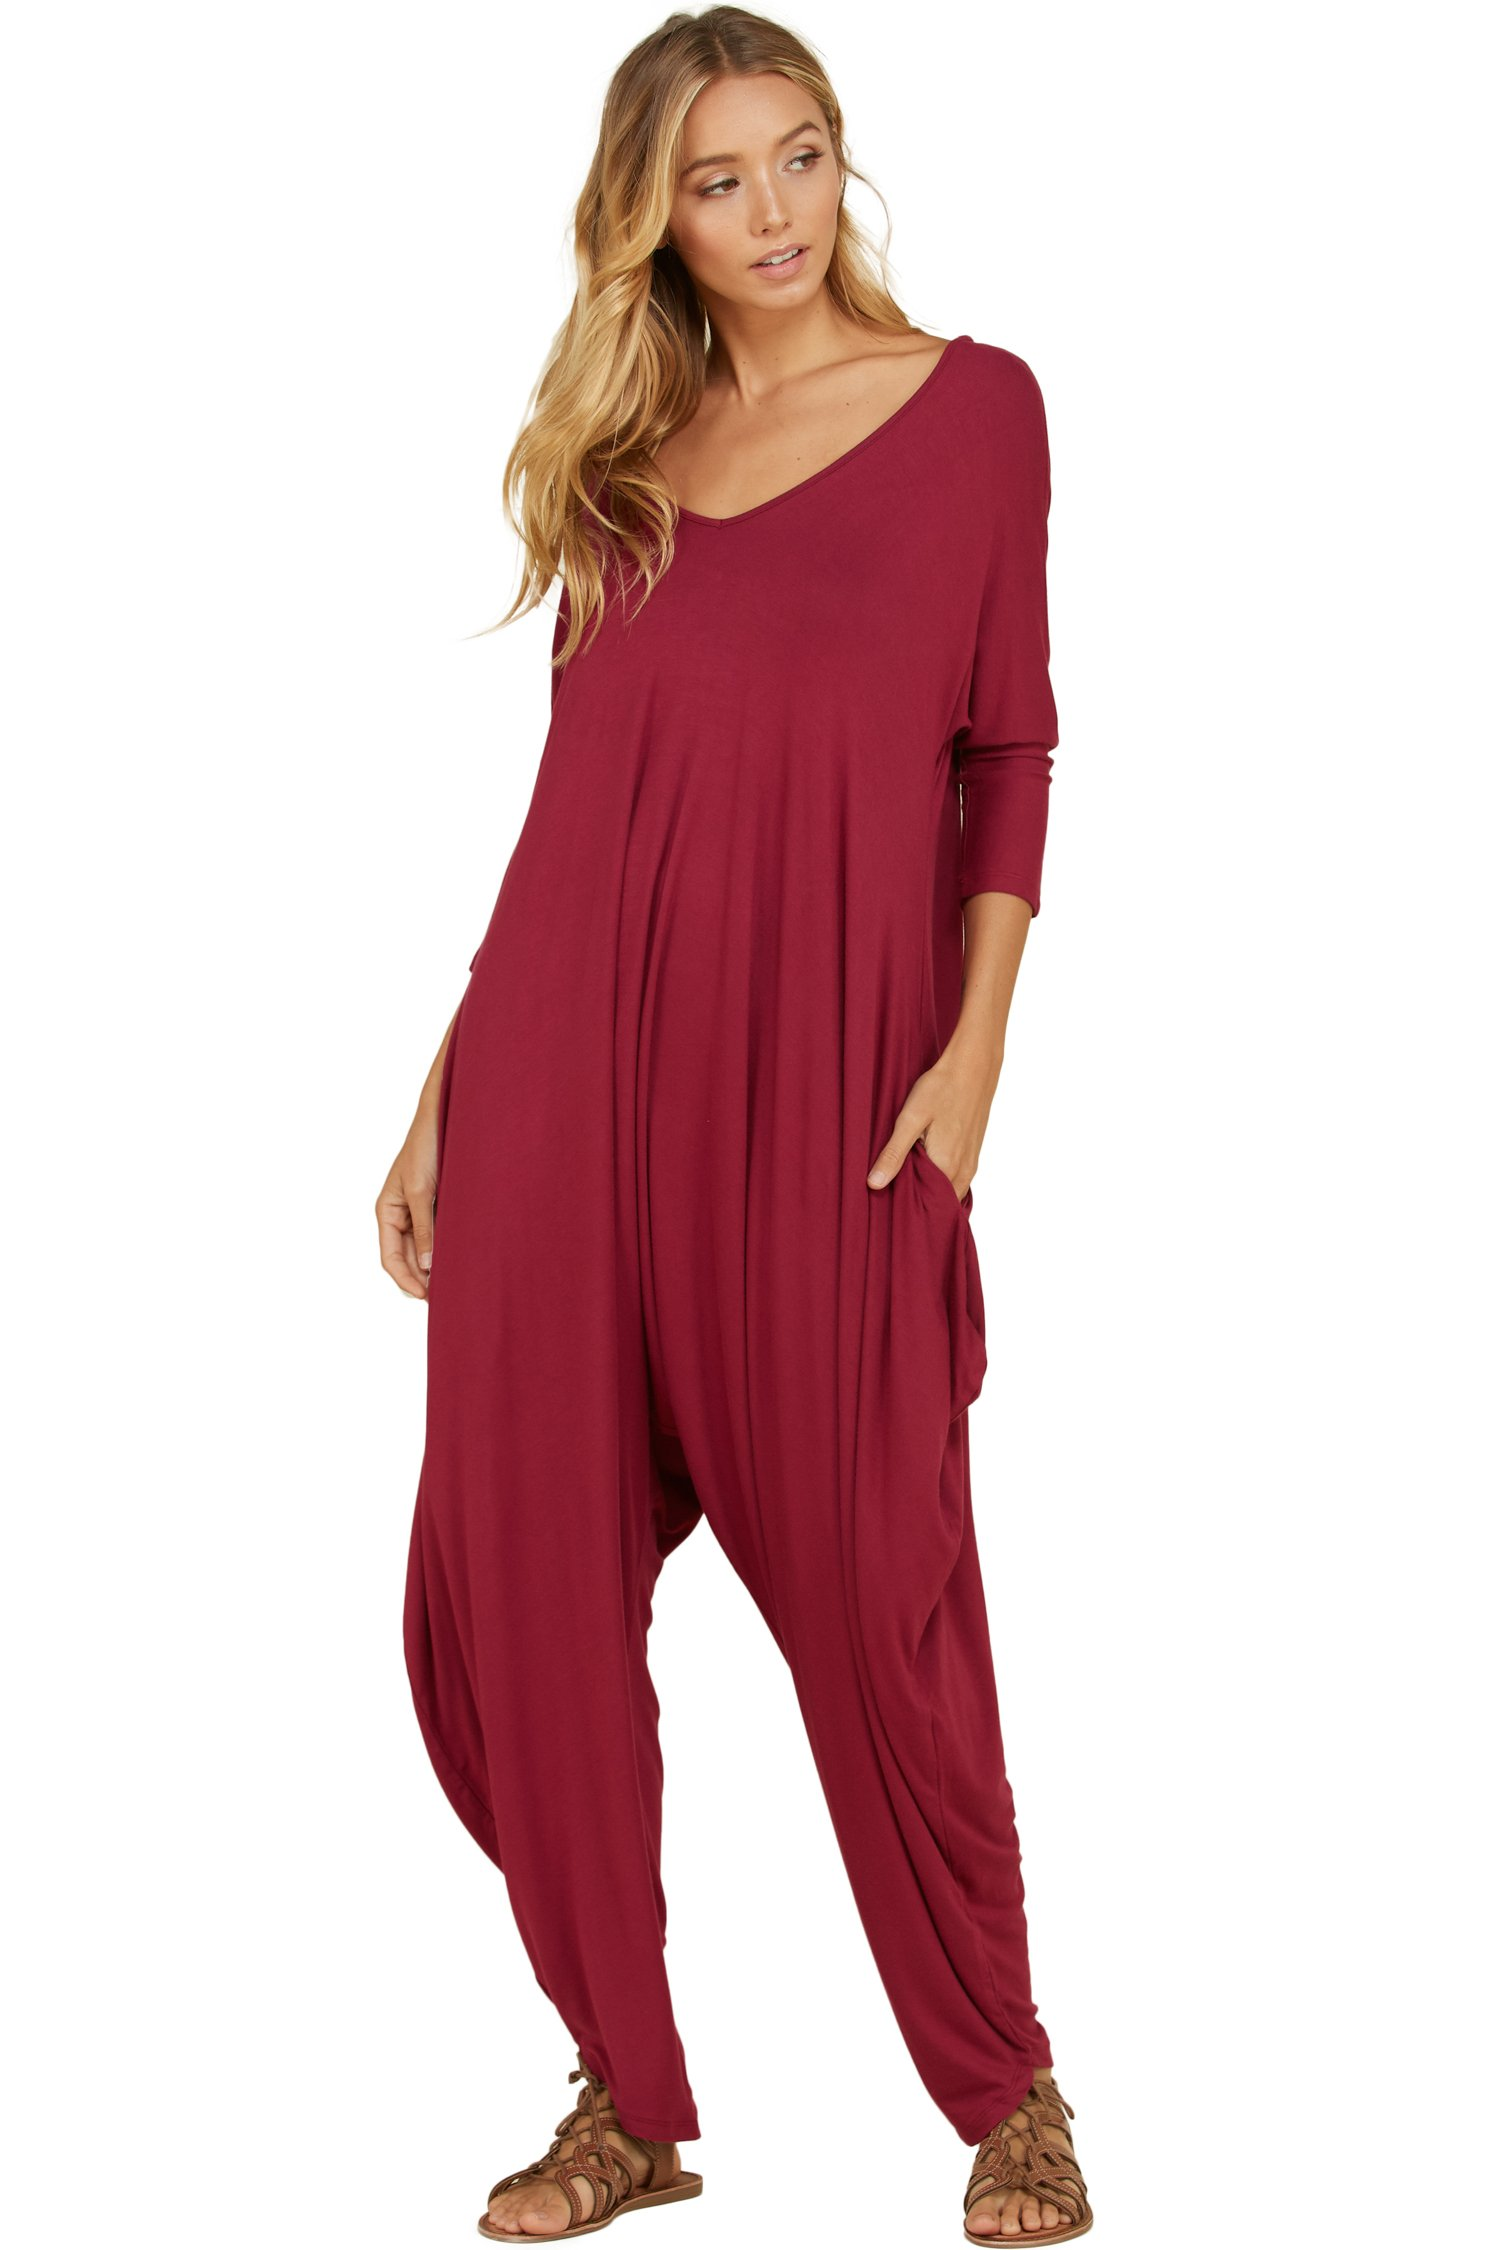 Annabelle Women's Harem Bottom Back Cut Out Detail Full Length Solid Plus Size Jumpsuit XX-Large Berry JC6008X